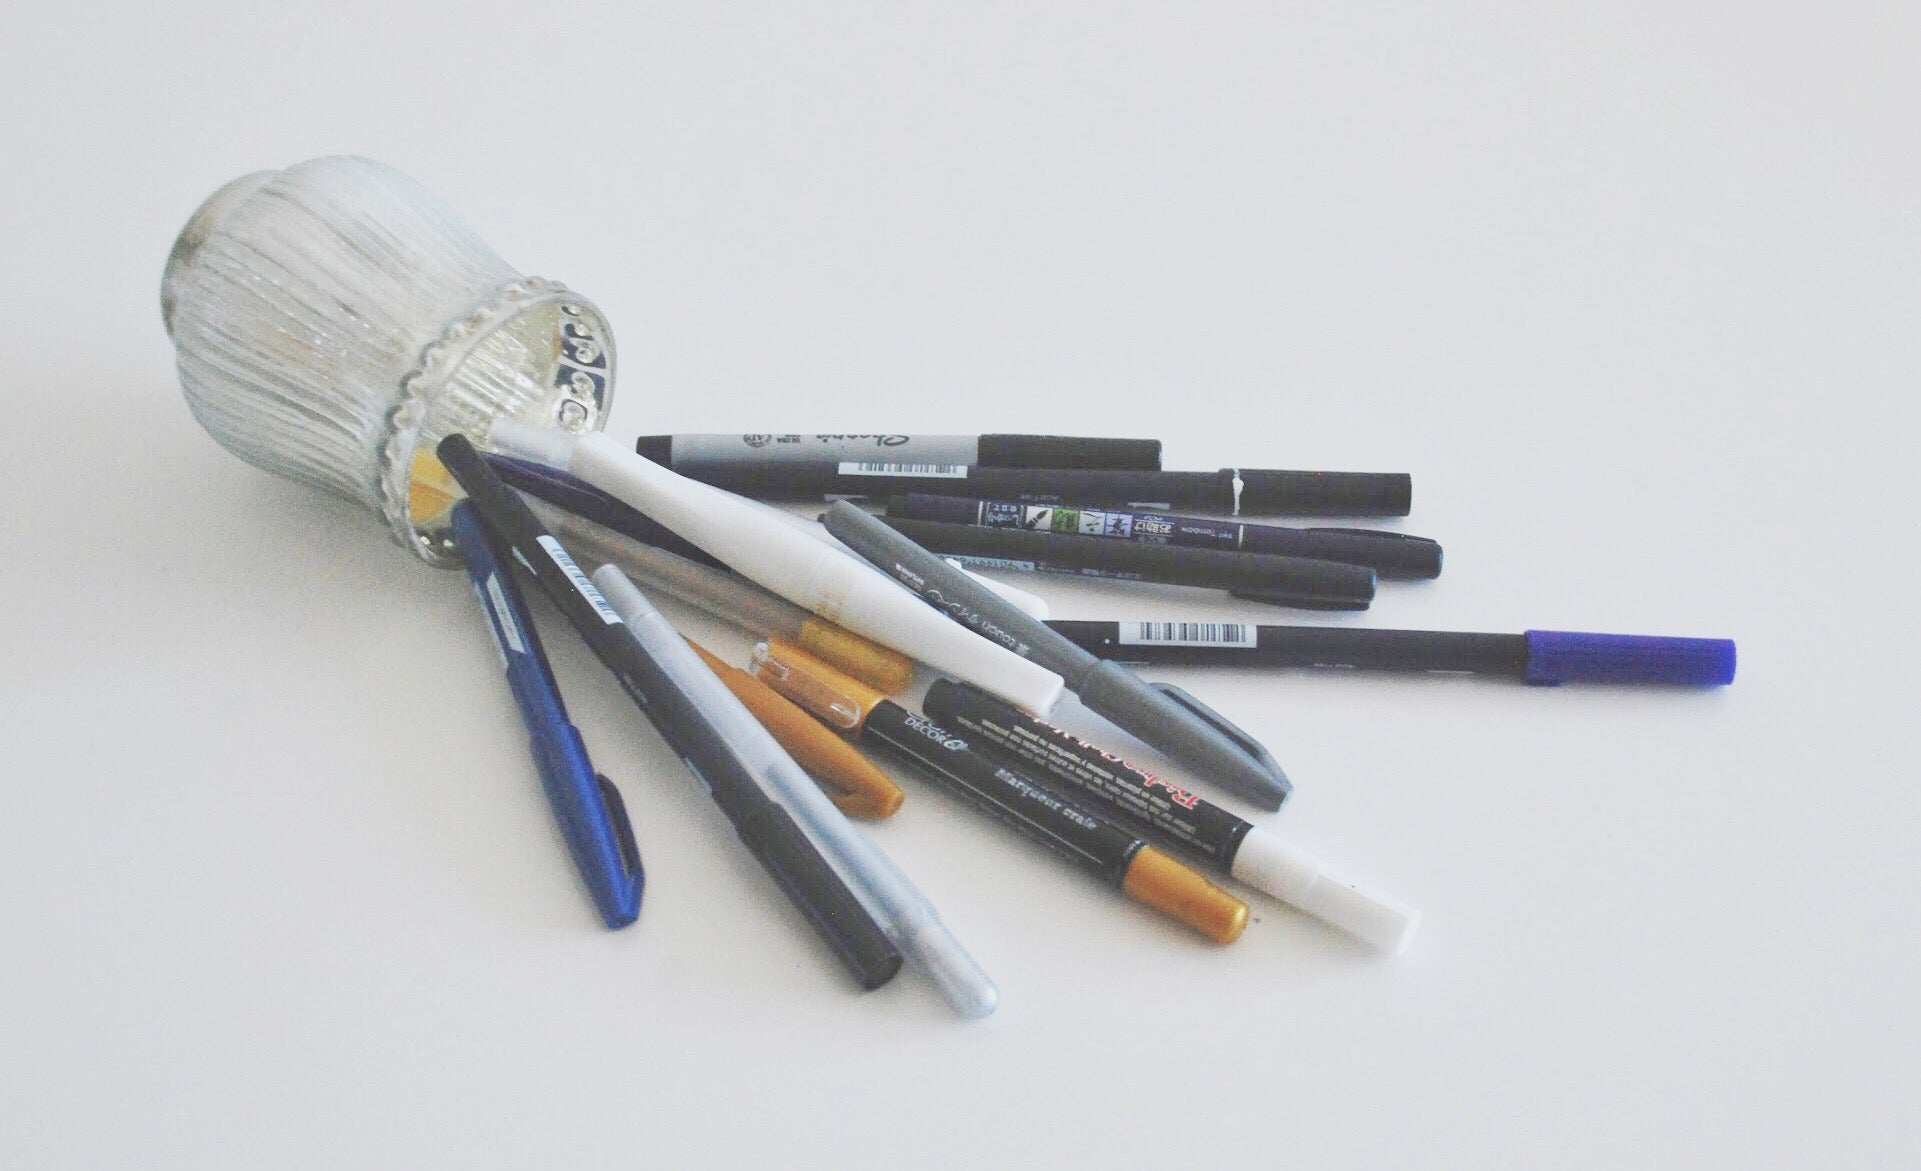 calligraphy pens, jelly rolls, brush markers   5 things you need: craft edition   Thoughtfully Handmade